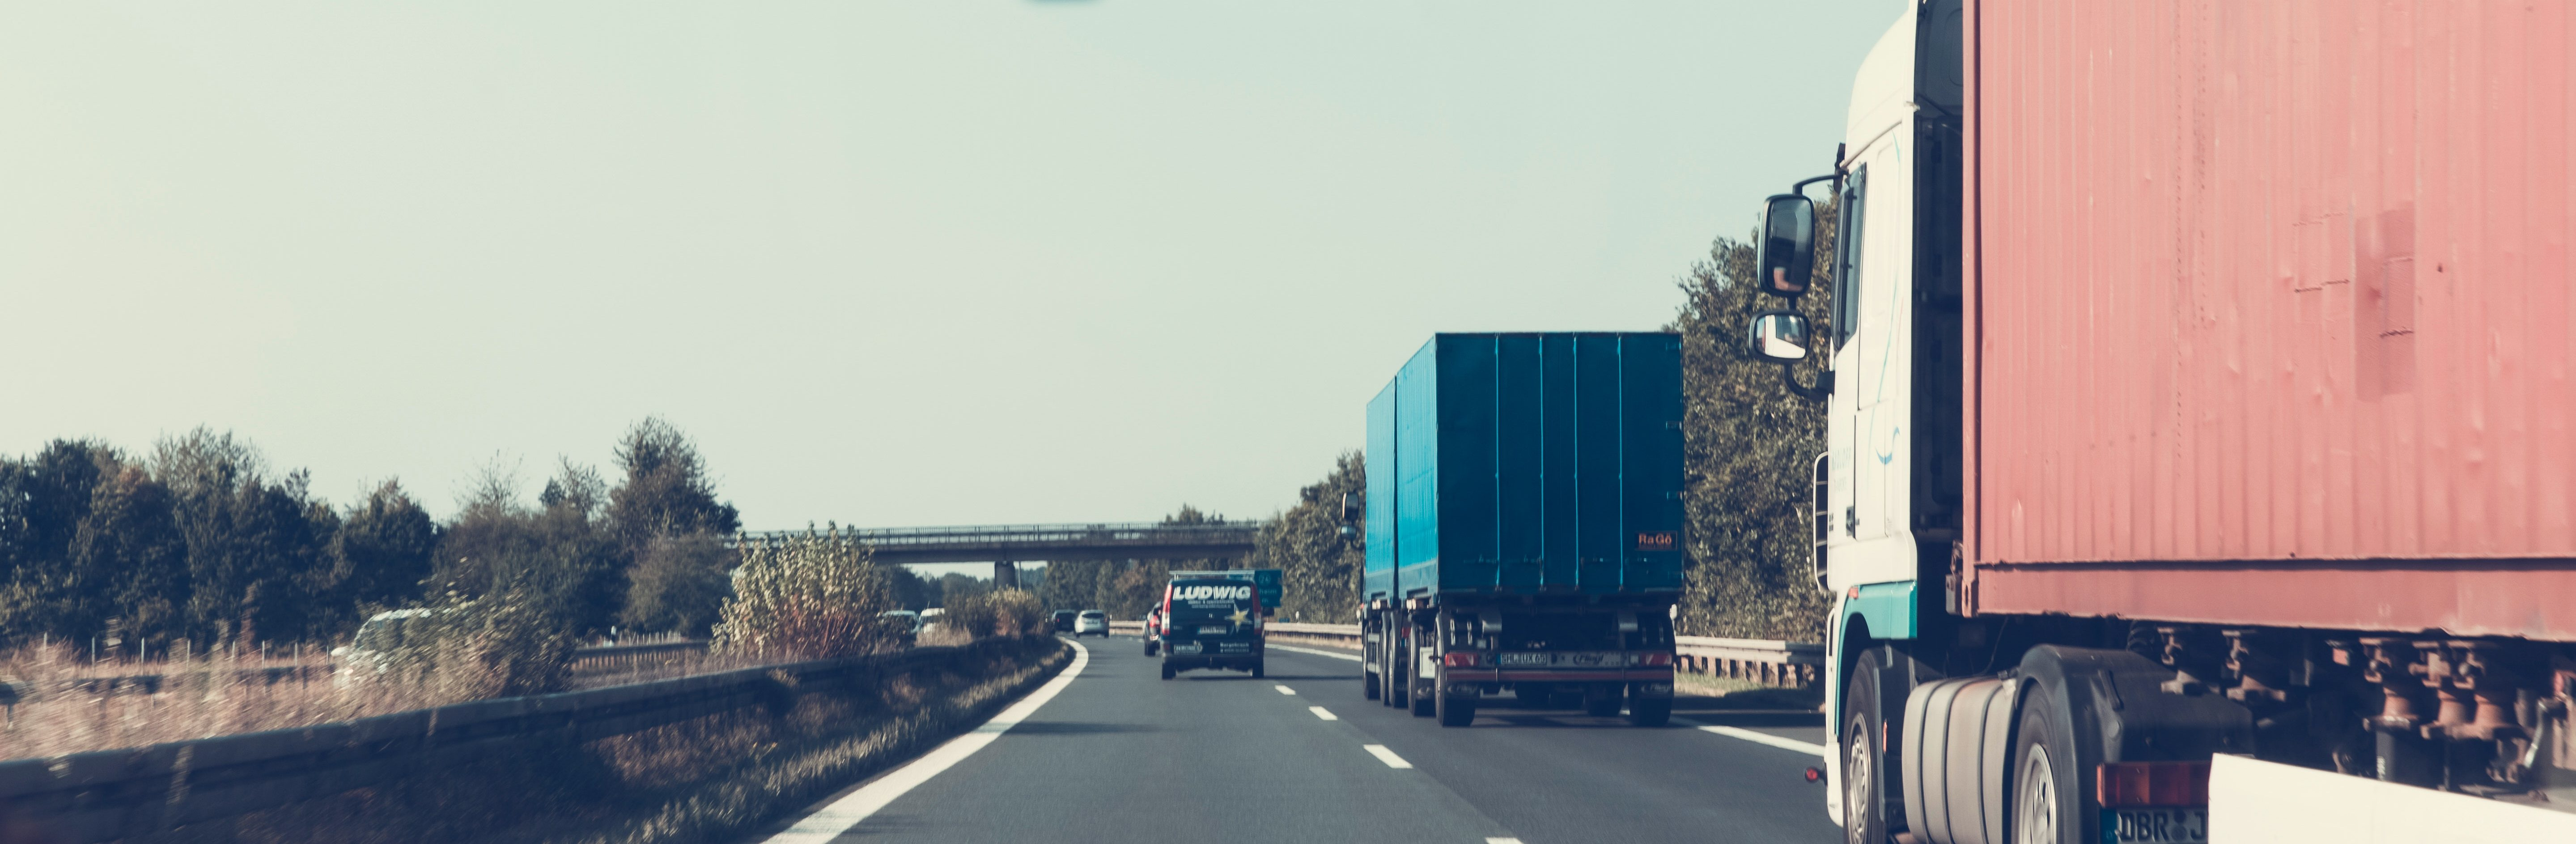 transportation industry driver safety quotient avoid risk accidents driving incidents driver assessment